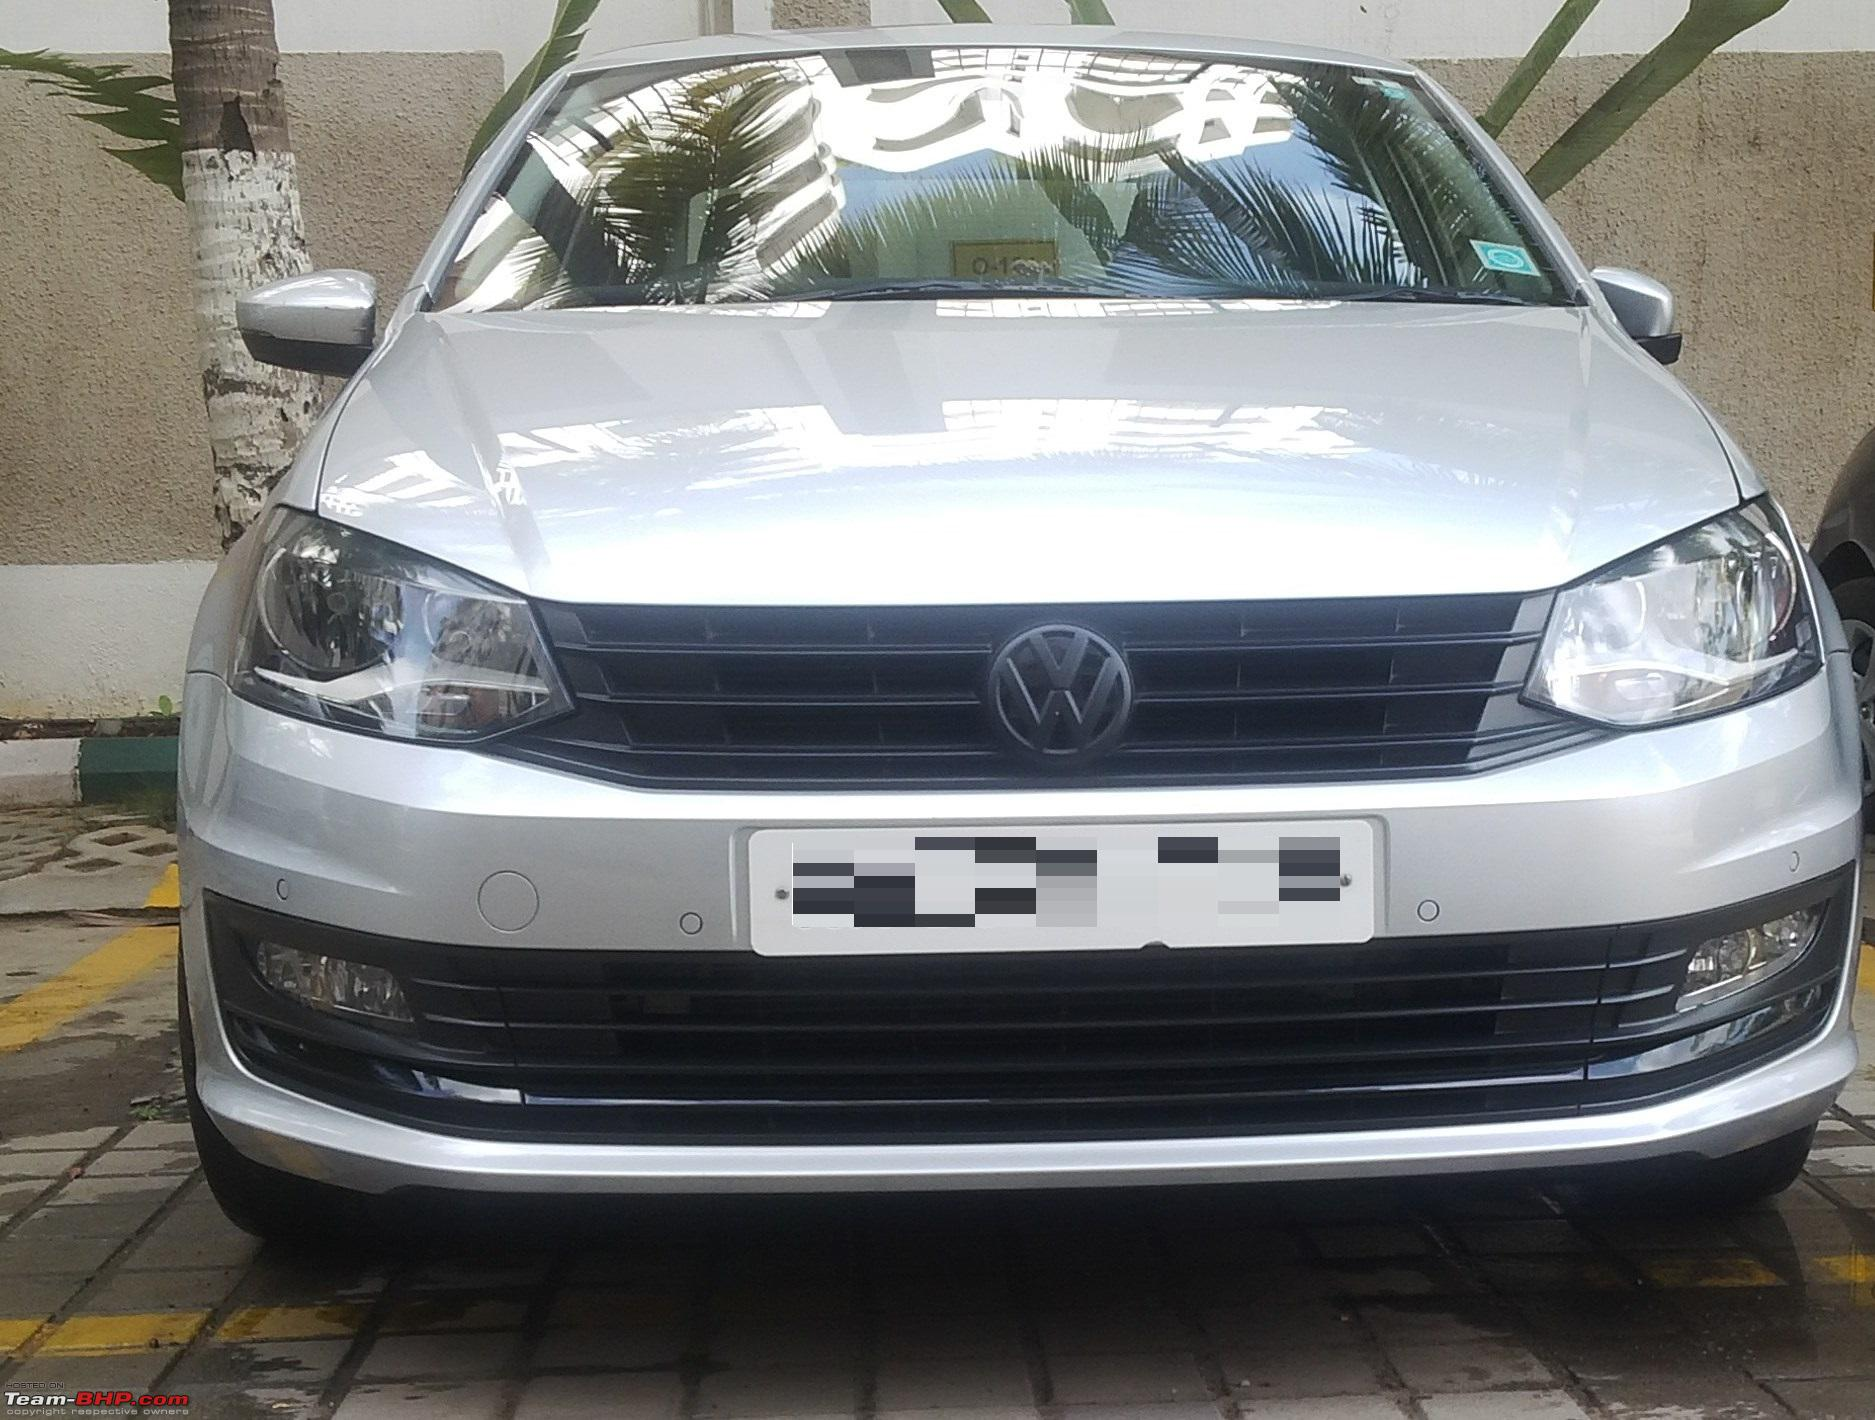 DIY: Installing OPS (Optical Parking System) in the VW Polo / Vento